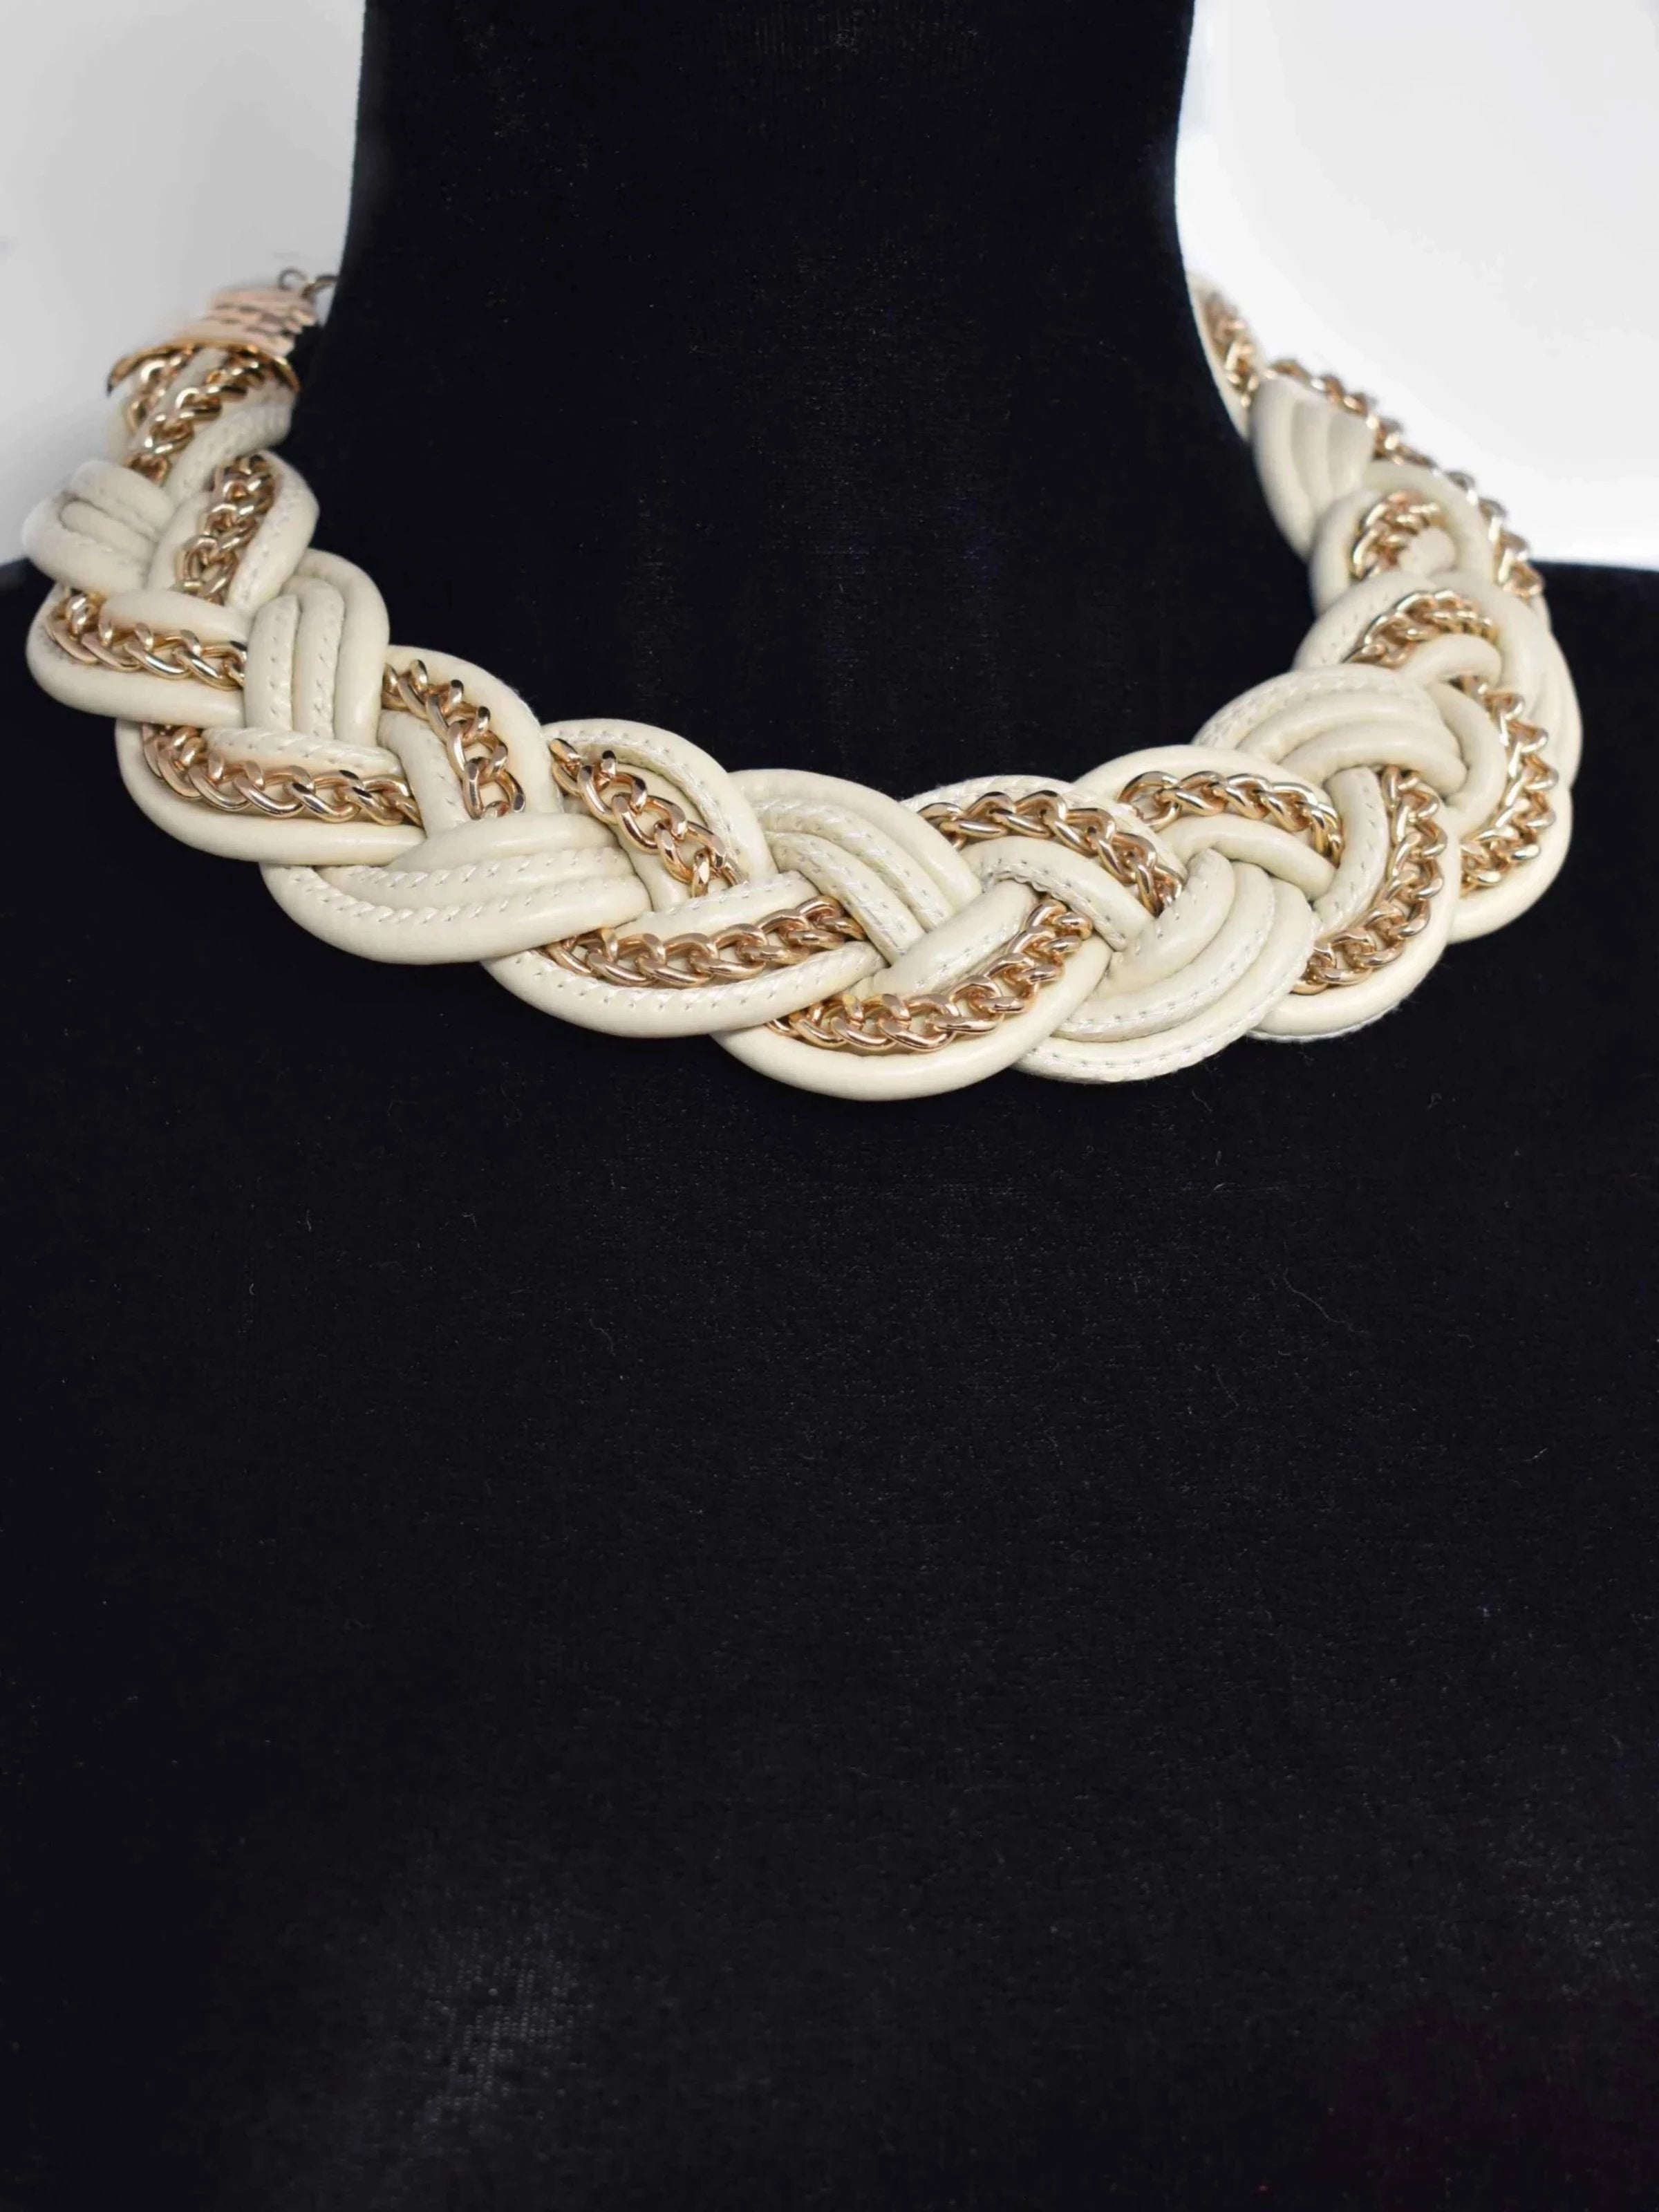 "Get all the attention in the Agera statement necklace. This cream braided necklace is accented with gold chain trimming for a unique design. It messures 18"" in length and has a lobster clasp."